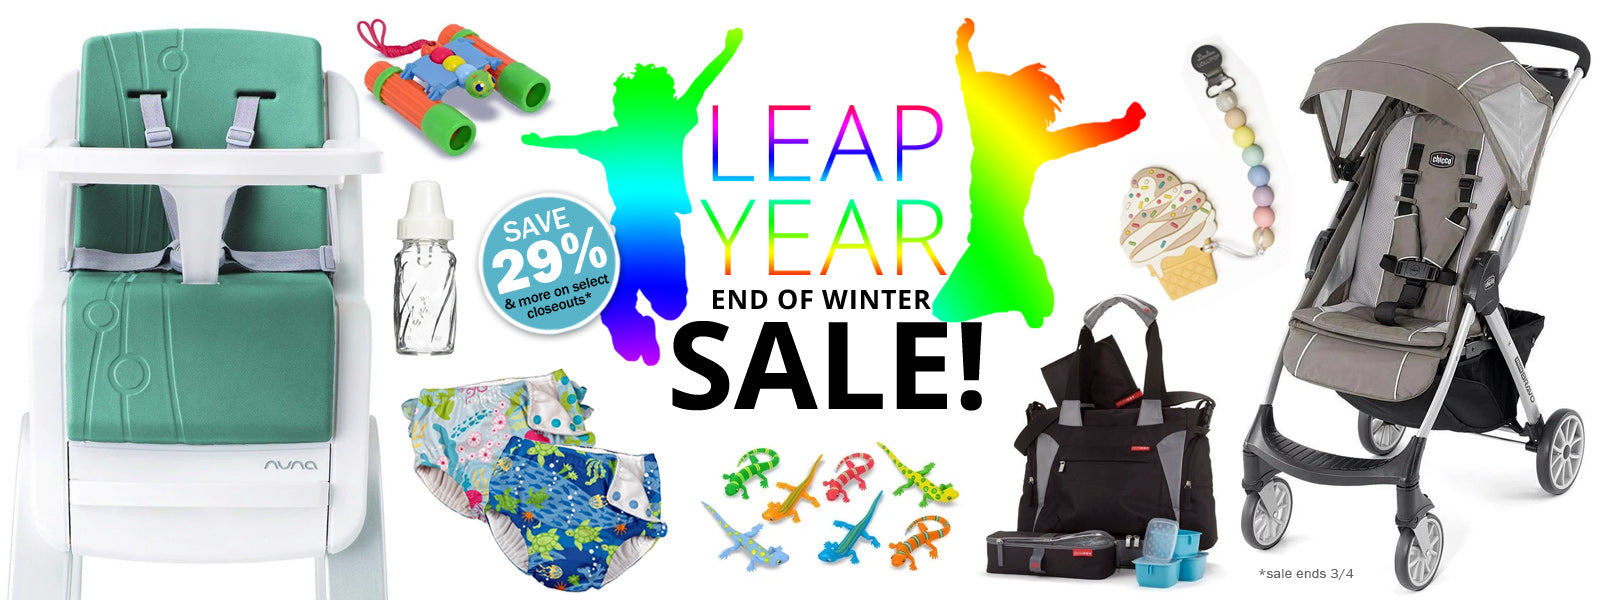 Leap Year Sale!